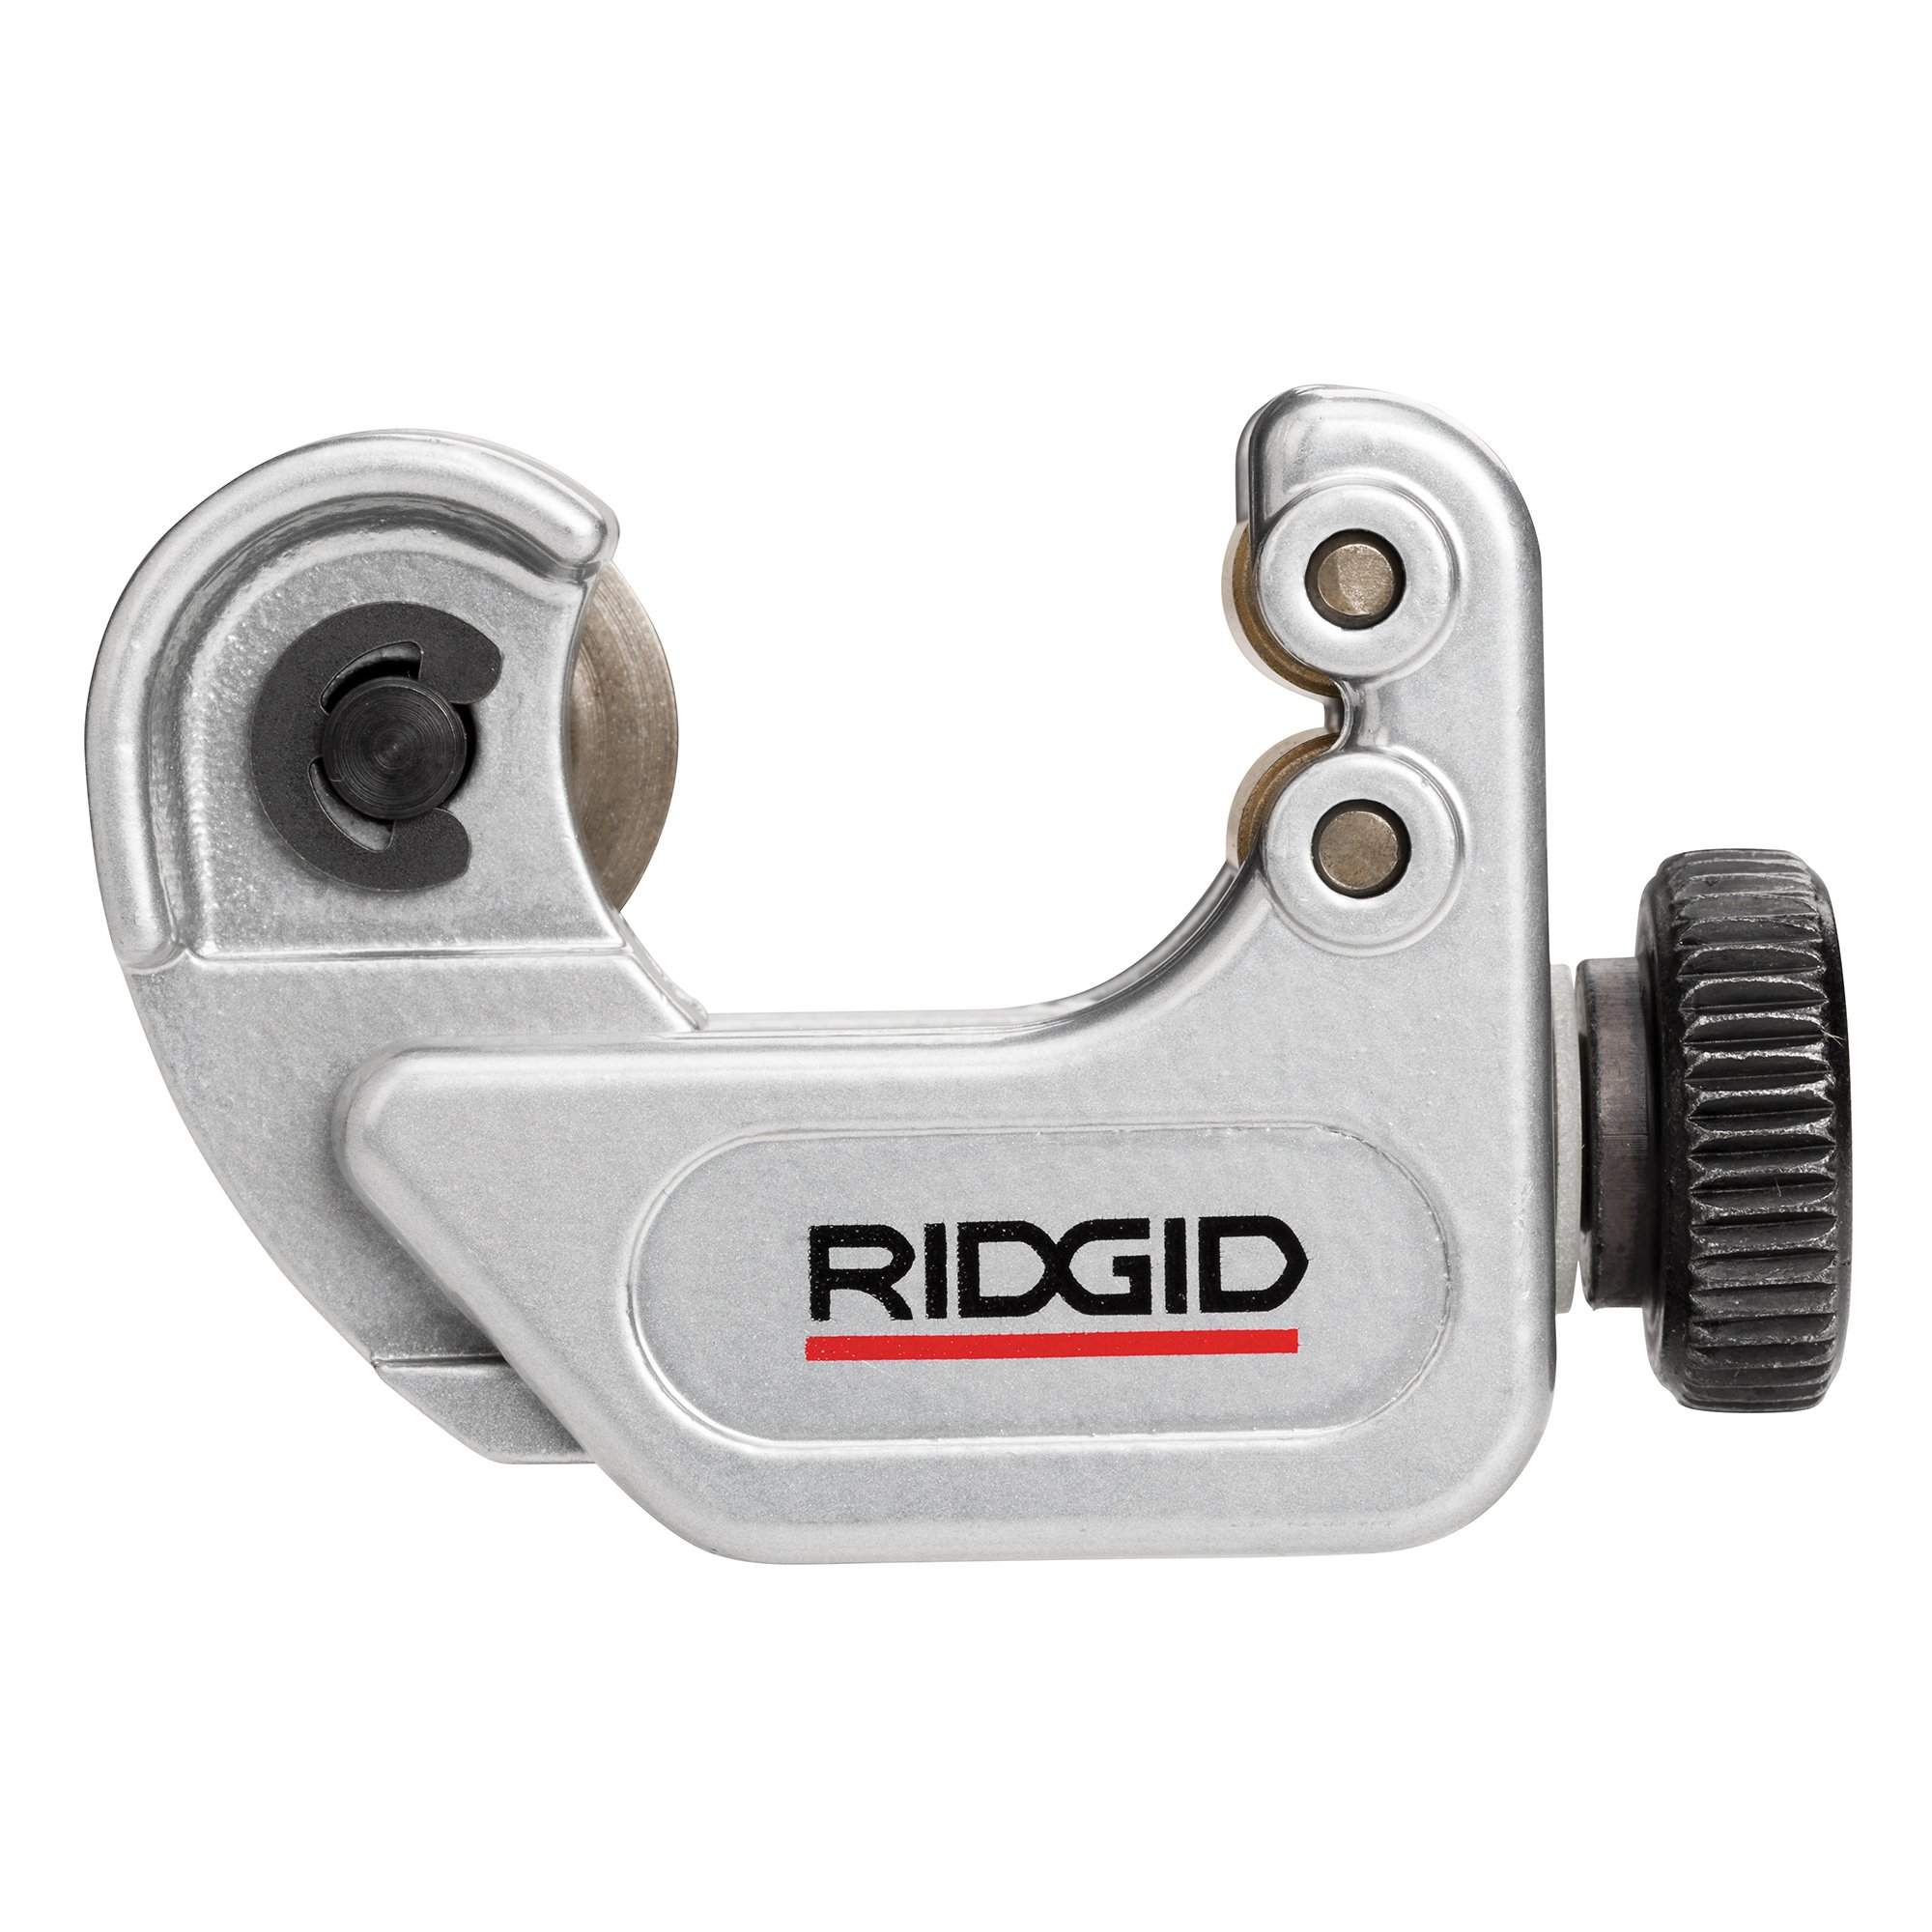 RIDGID 32975 Model 103 Close Quarters Tubing Cutter, 1/8-inch to 5/8-inch Tube Cutter by Ridgid (Image #2)